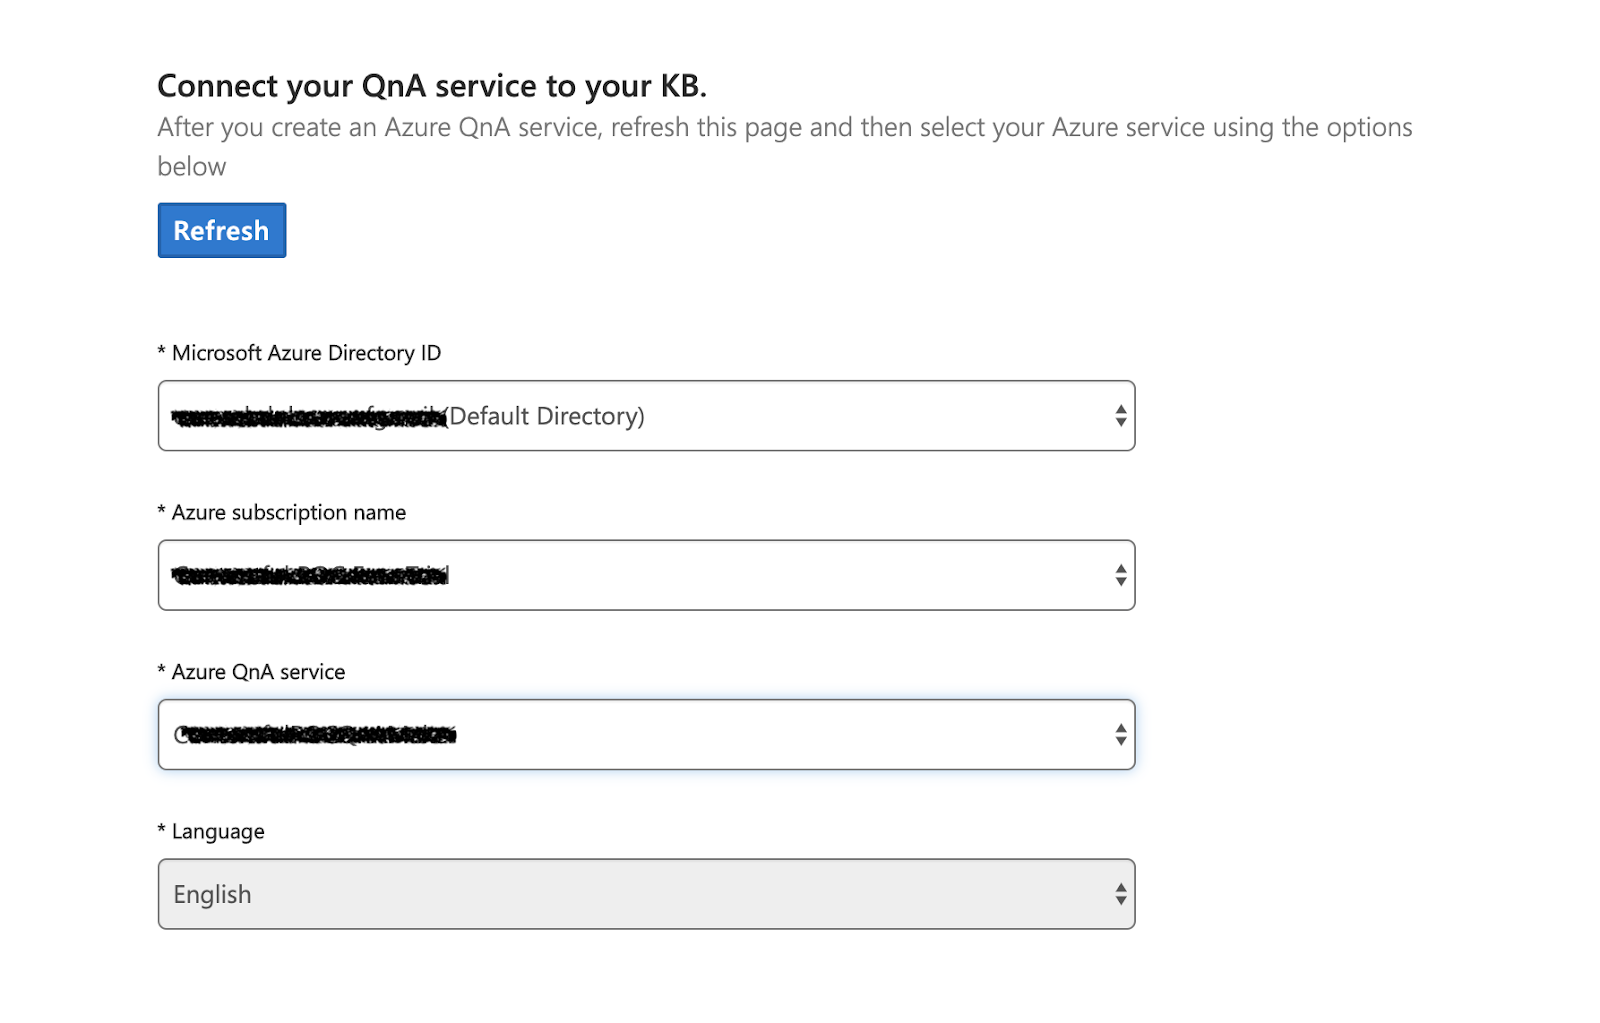 Go back and refresh to see your subscription name and Azure QnA service.